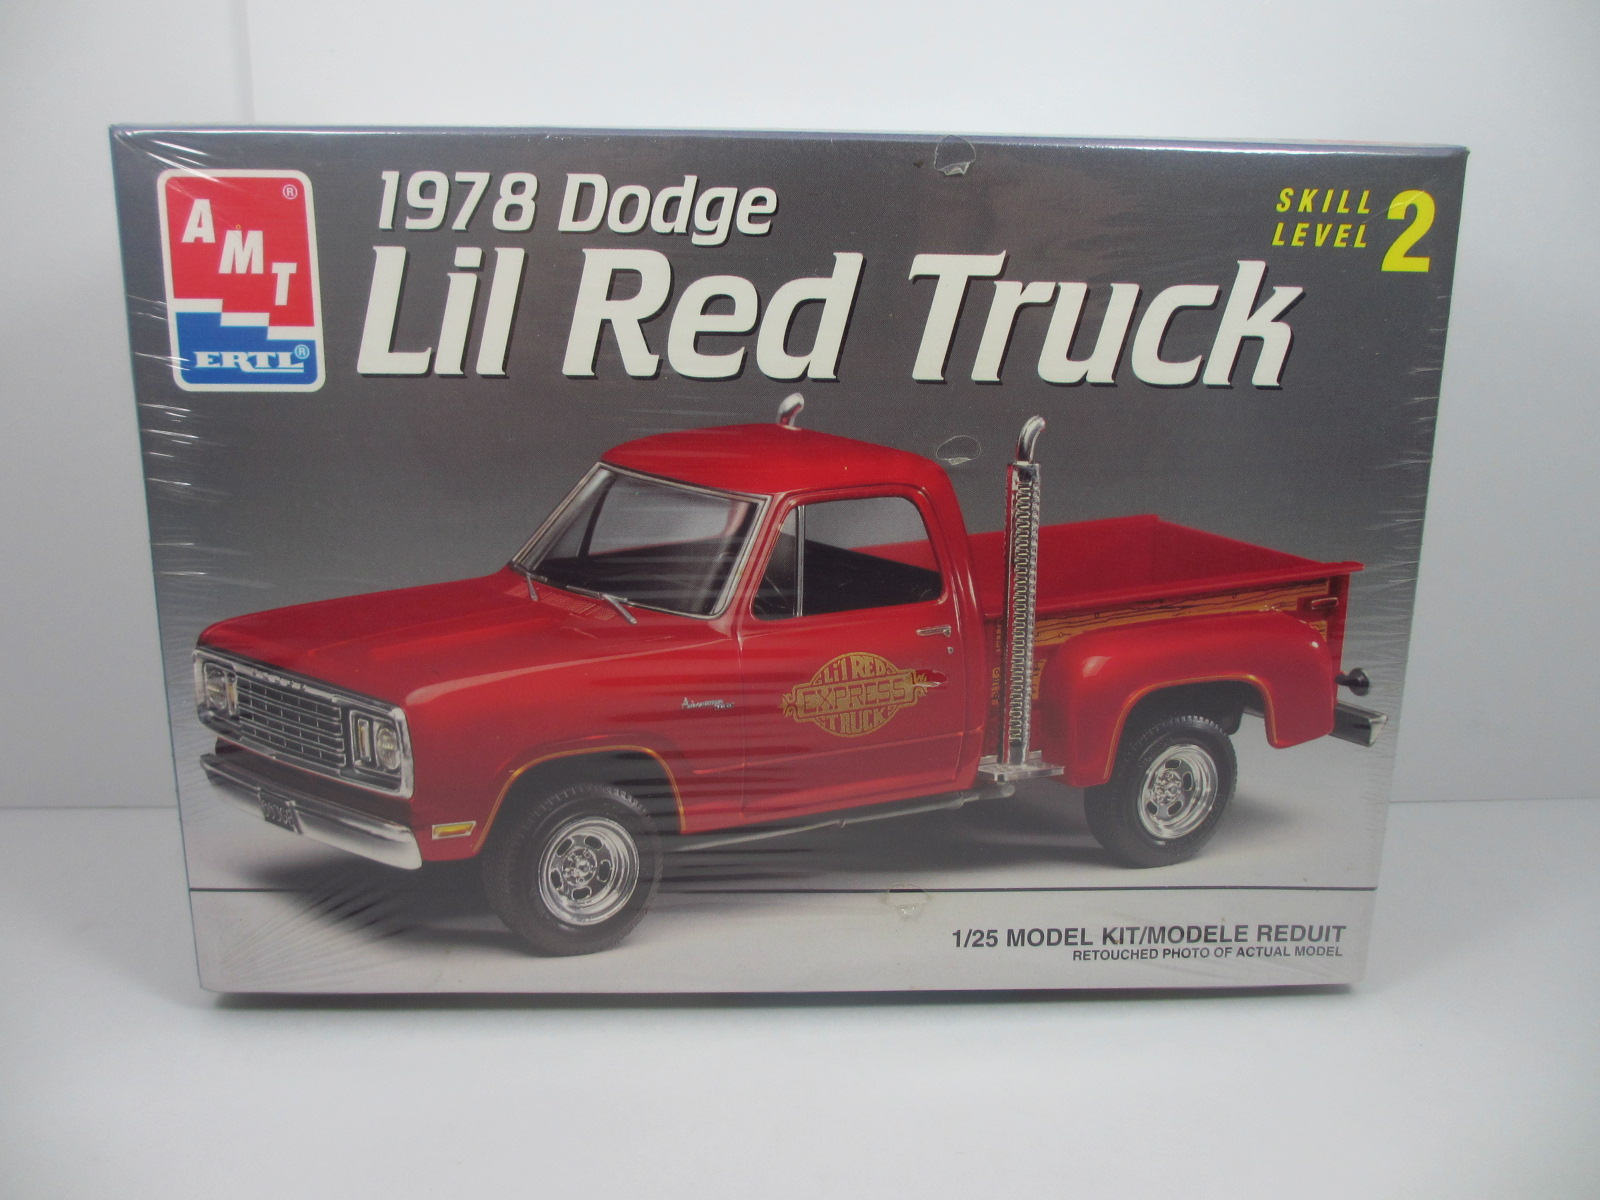 AMT 1/25  1978 Dodge Lil Red Truck  k-33